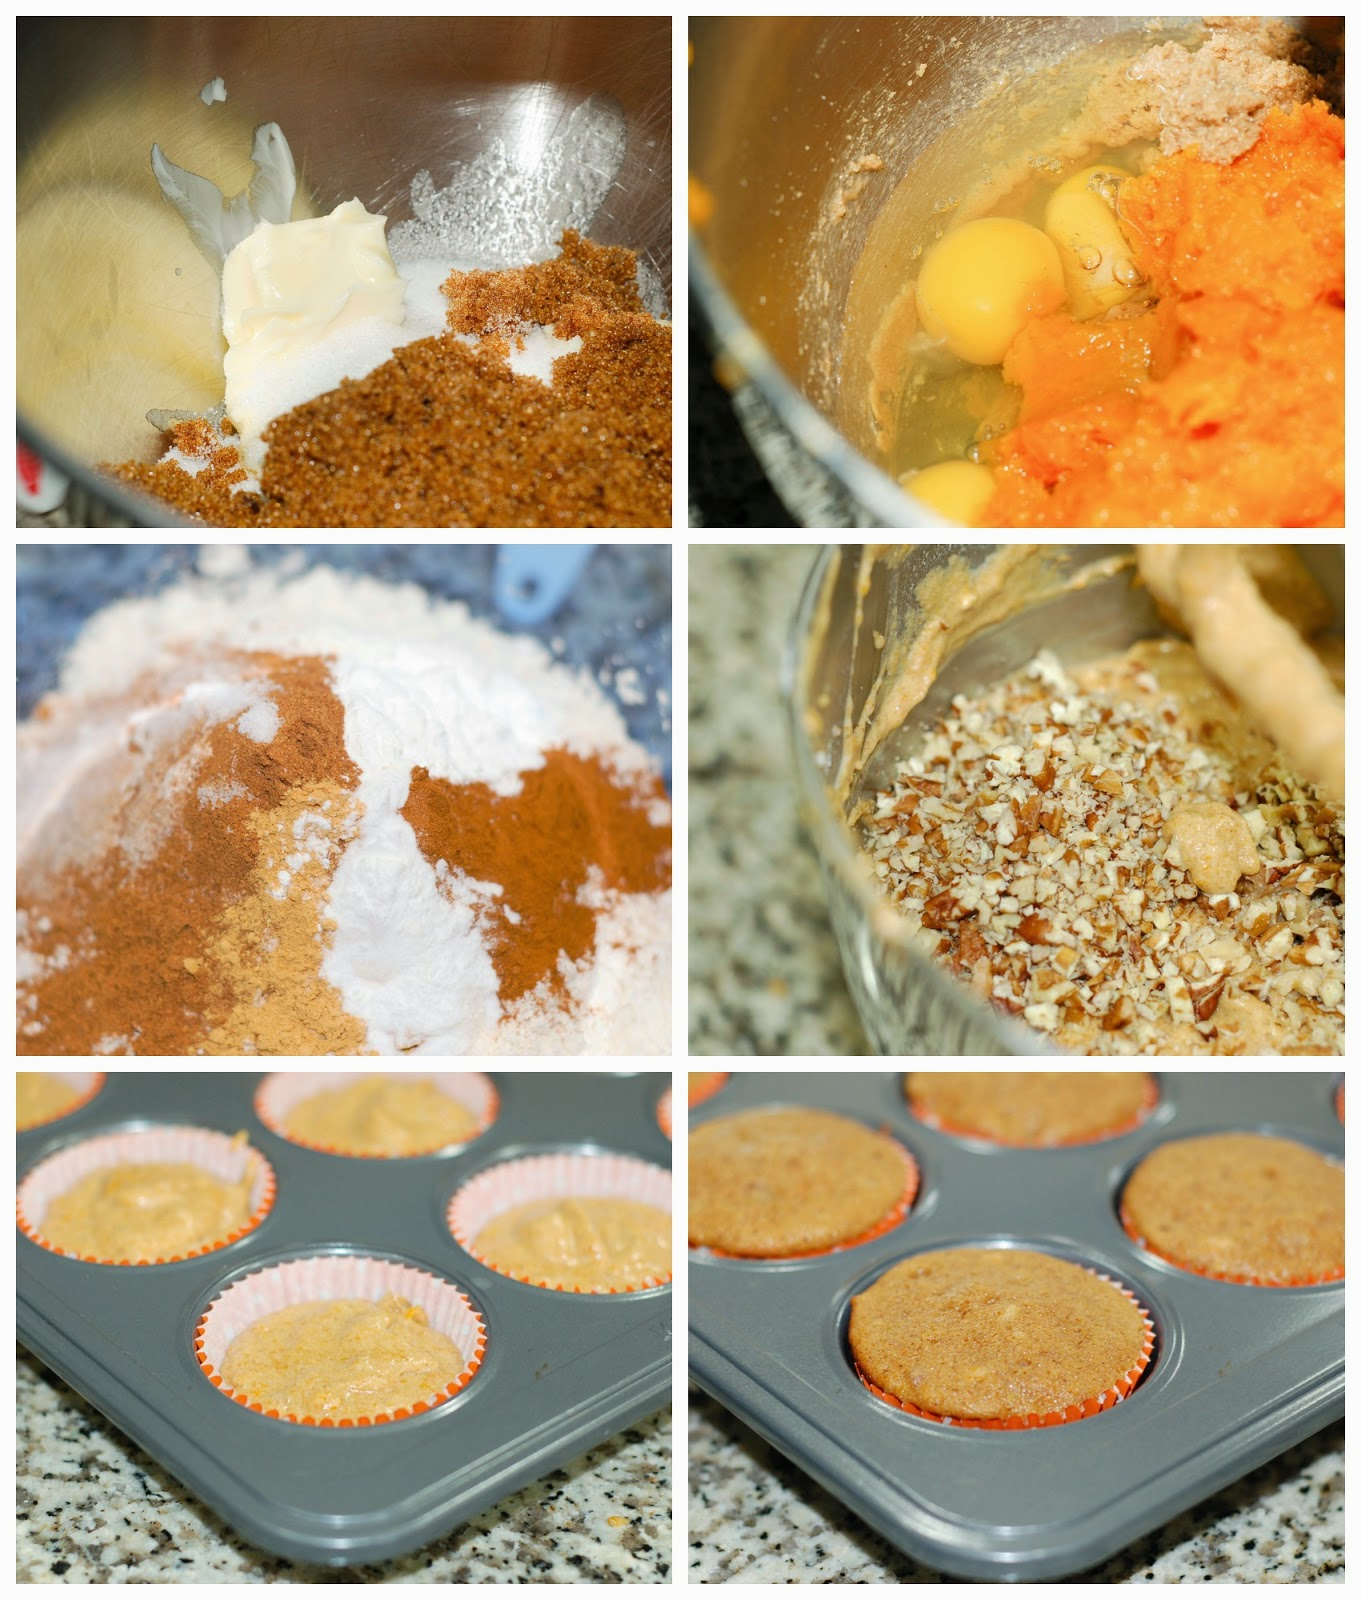 Making butternut squash cupcakes by The Sweet Chick